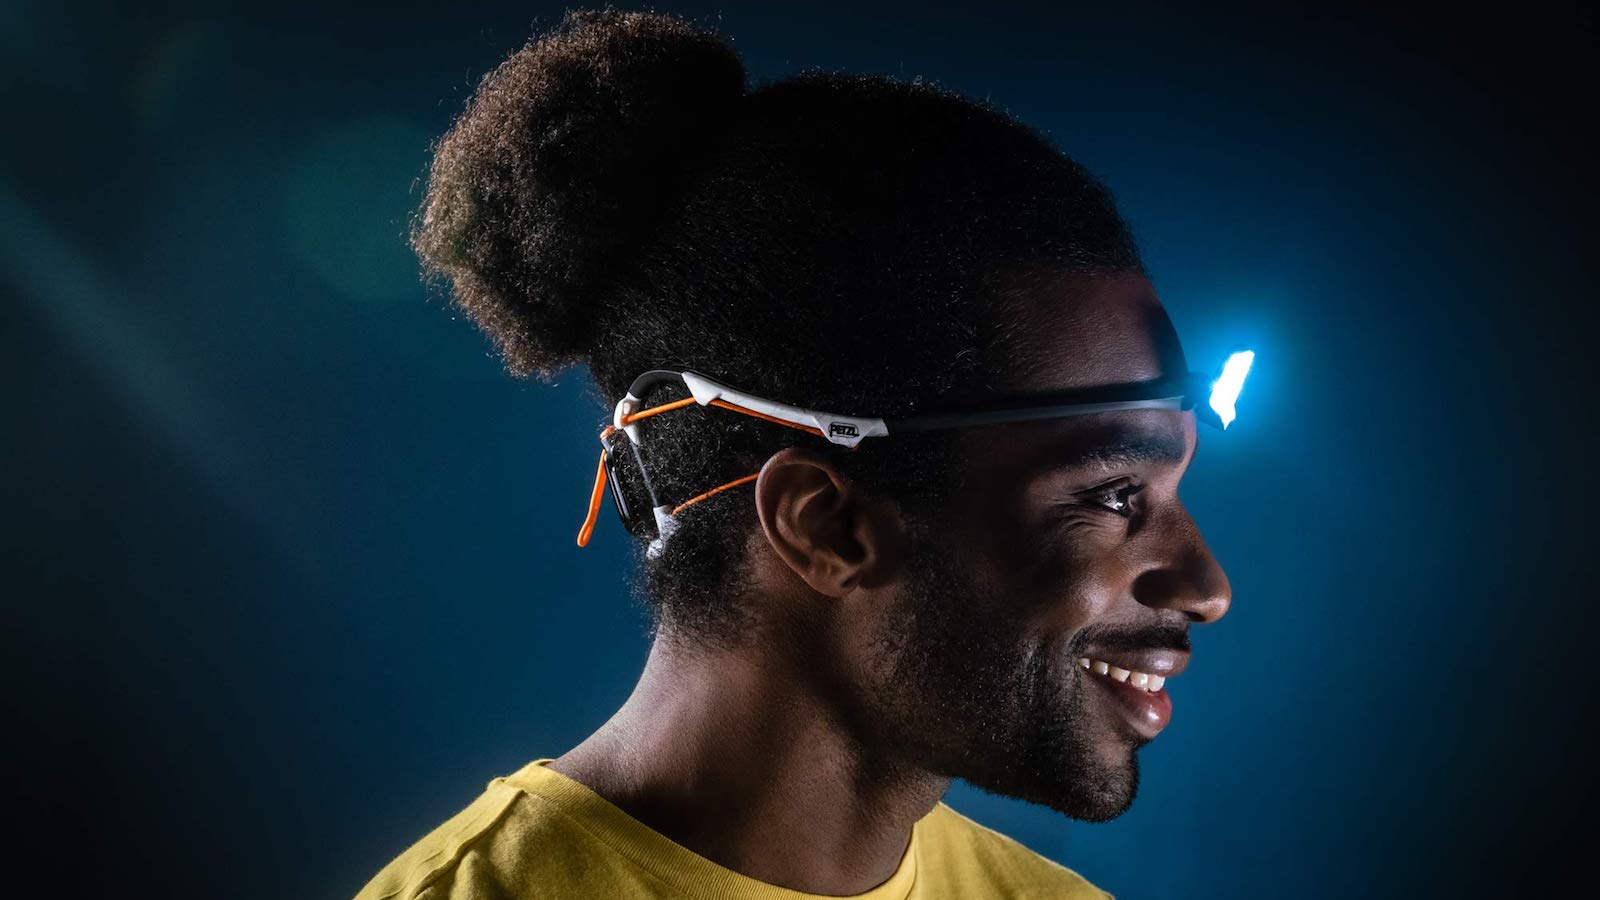 Petzl IKO CORE Wearable Headlamp features a patented AIRFIT headband for comfort